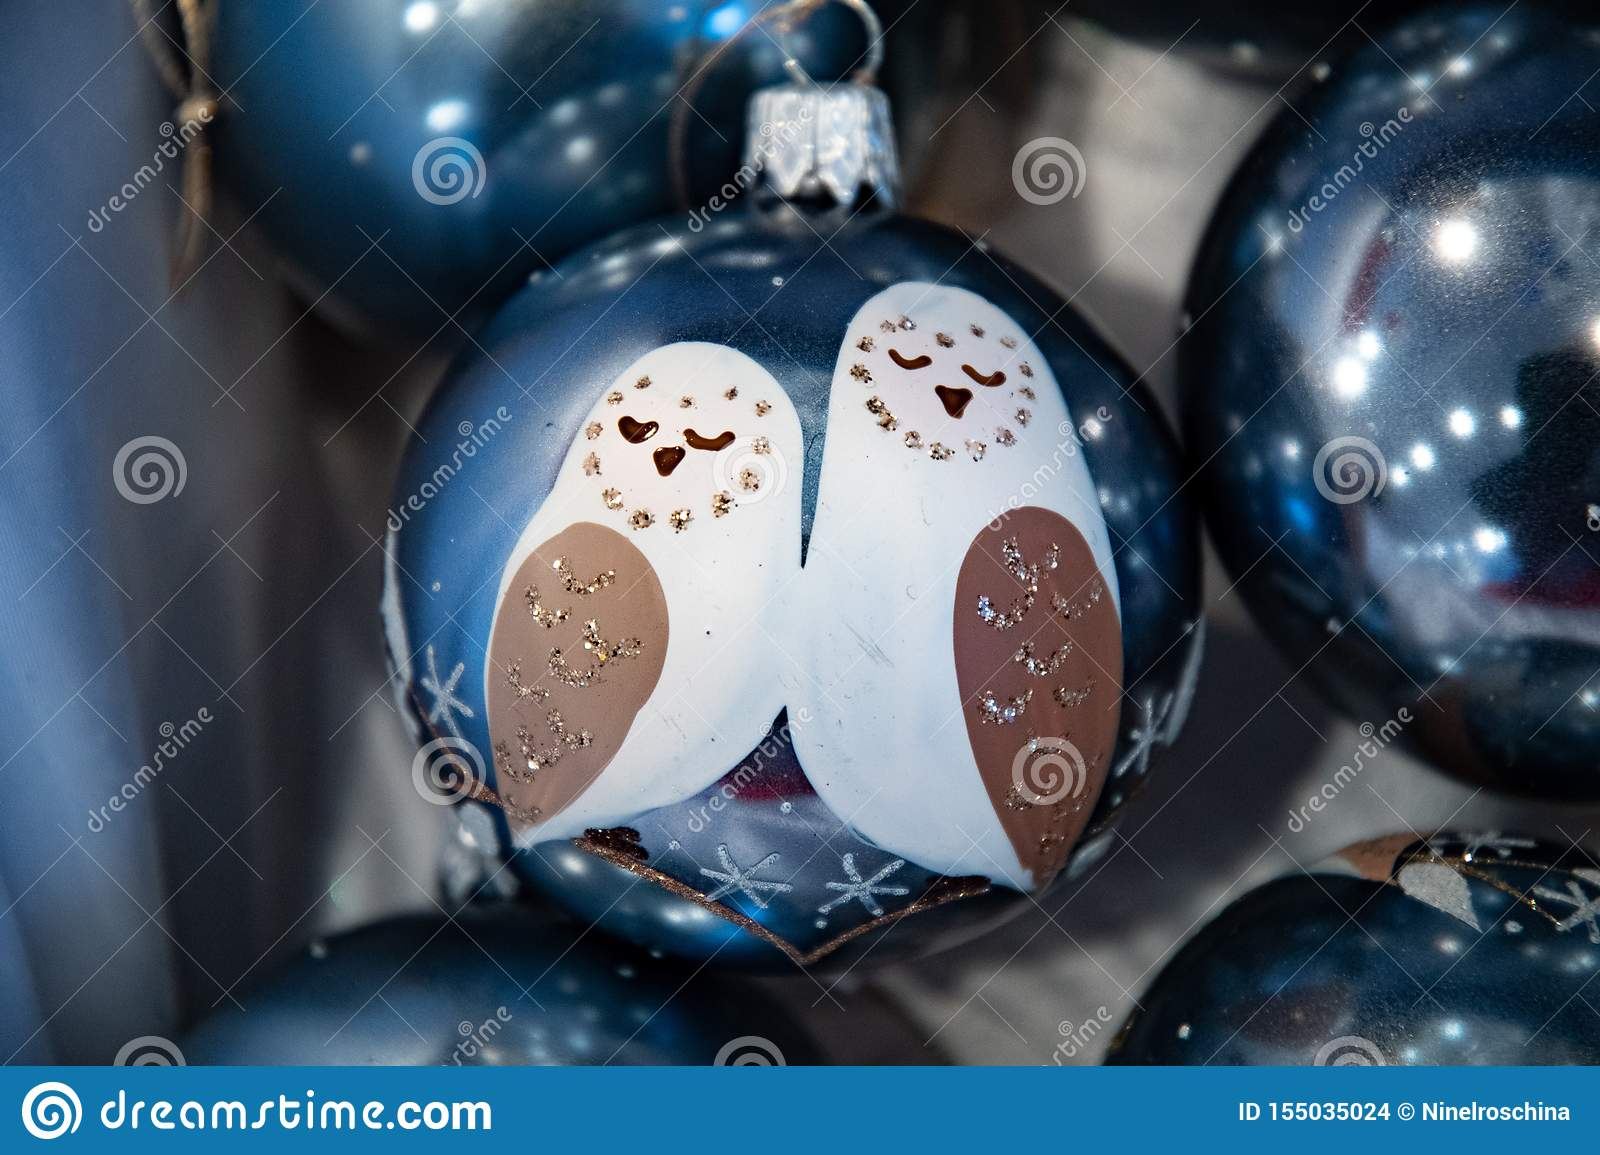 Fairytale Christmas Decorations.Hand Painted Glass Ball With Two White Owls Fairytale